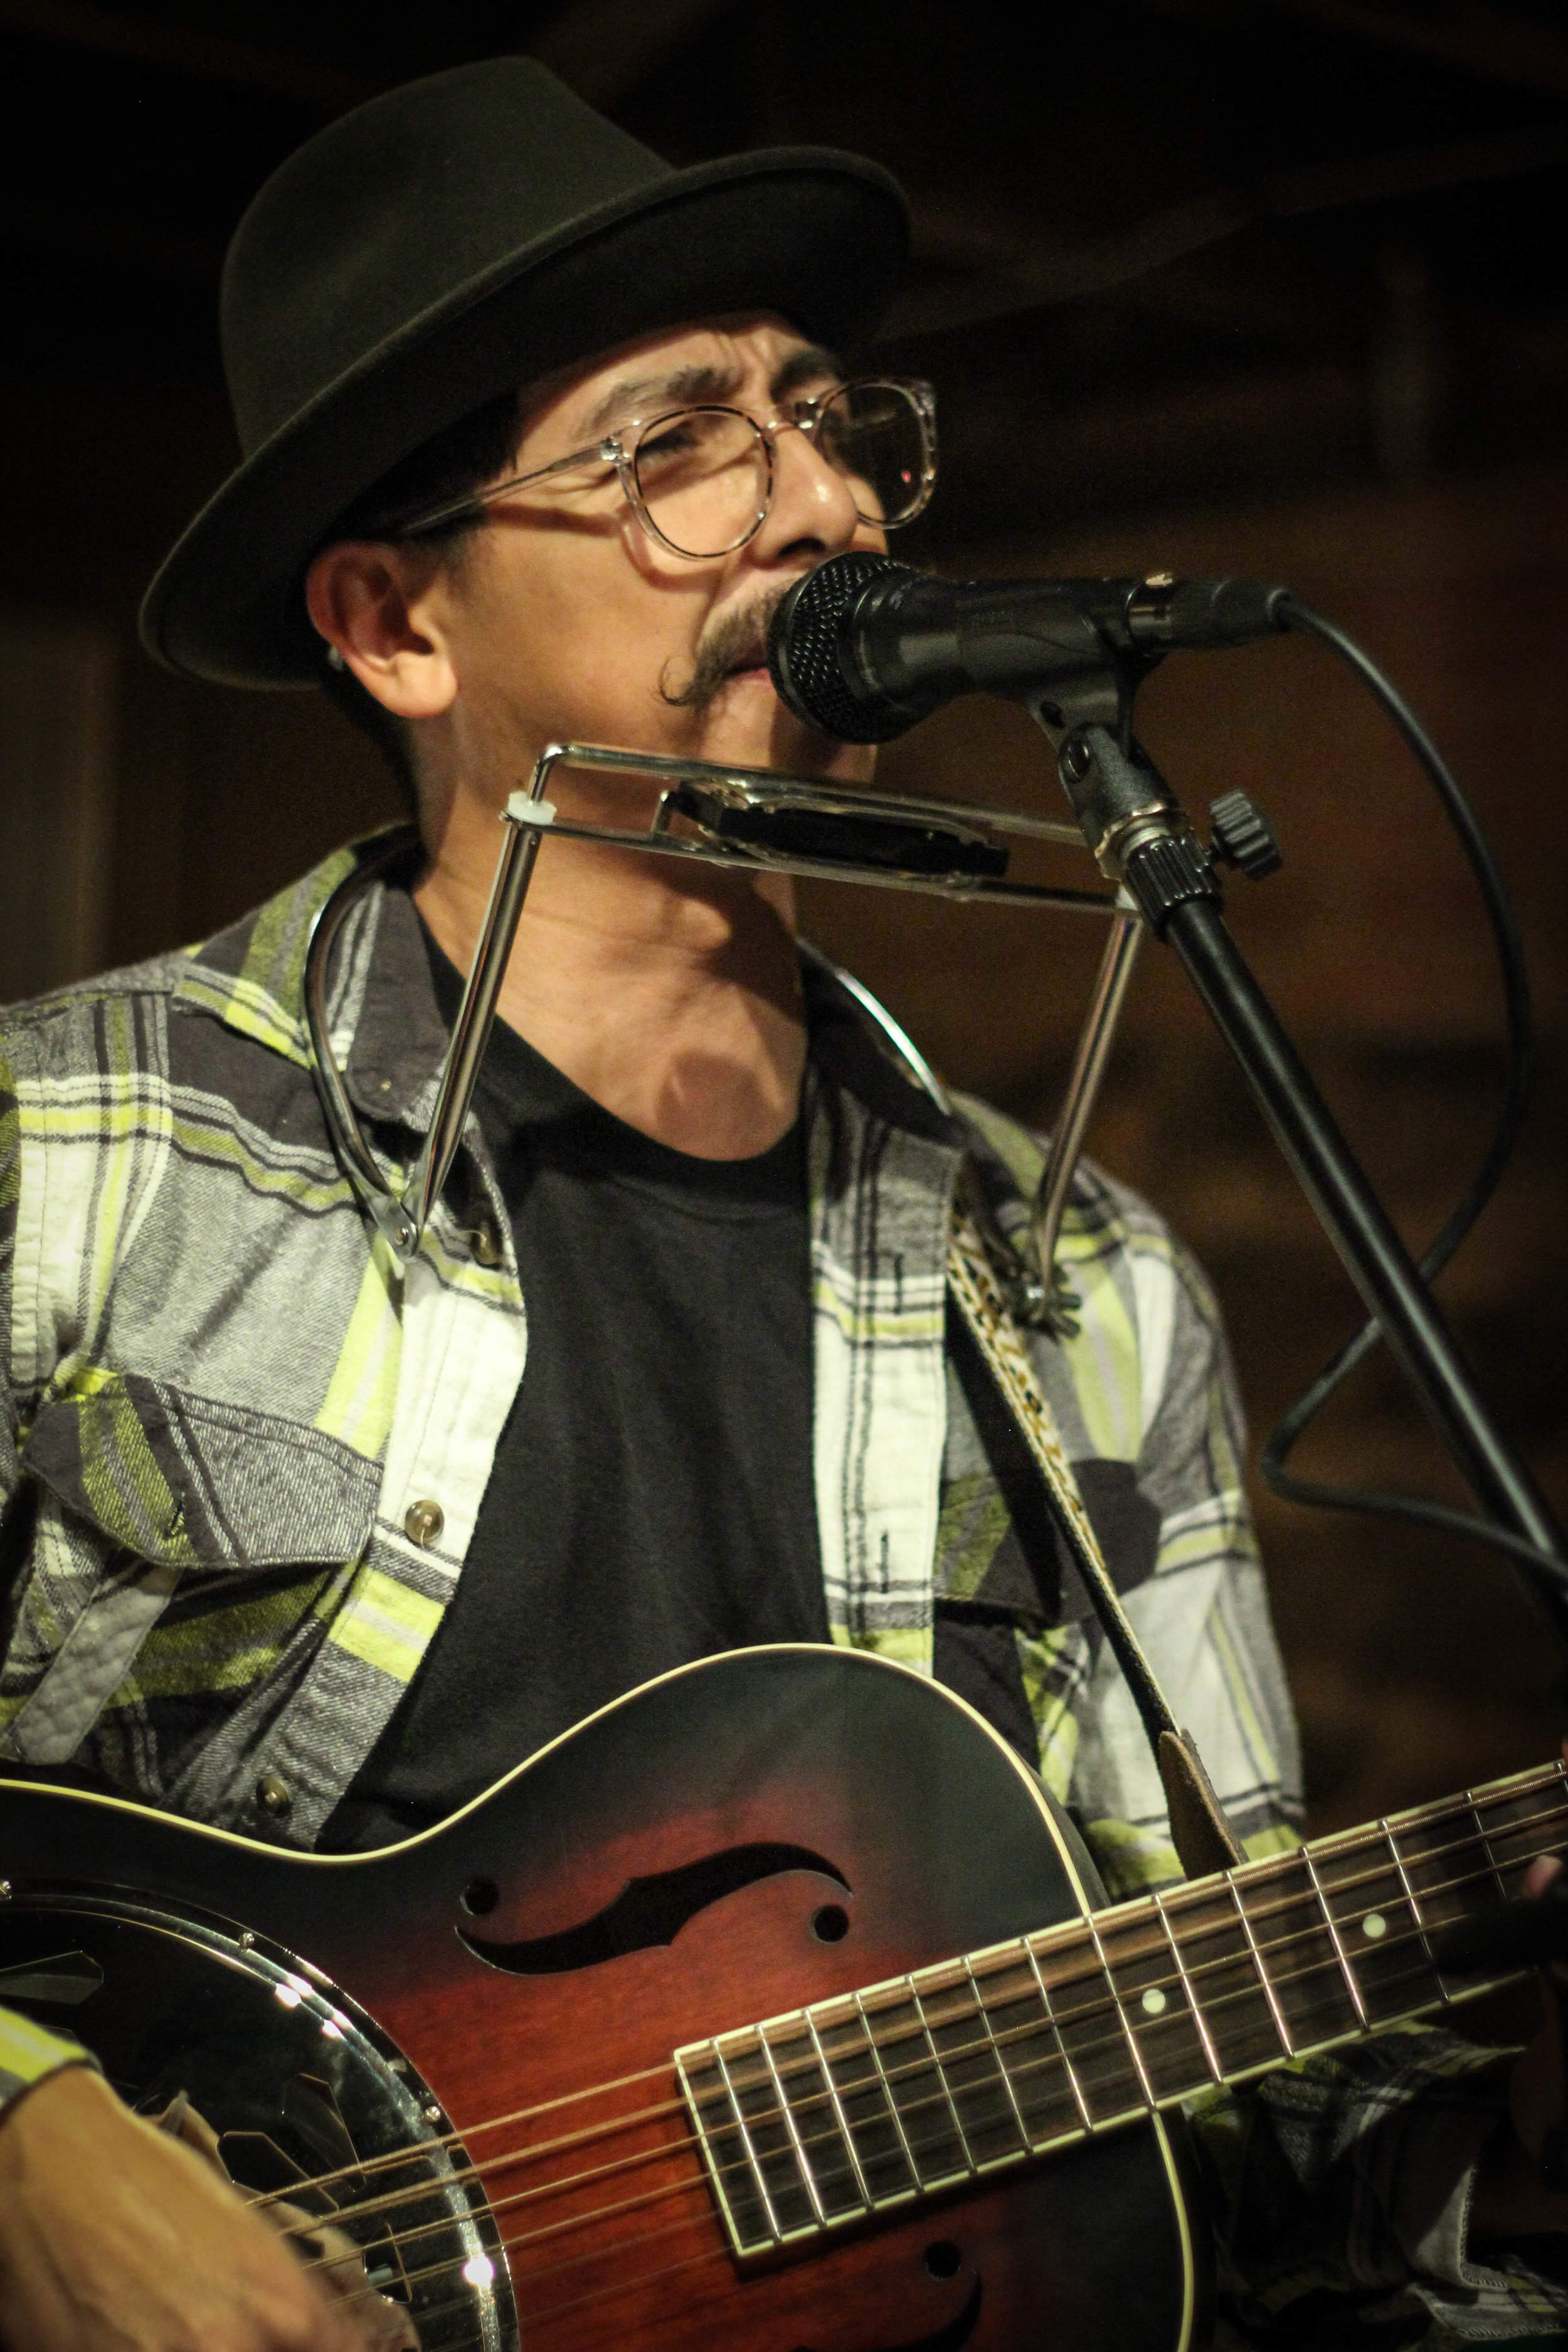 """Edgar Derby  {he/him}  music, photography   Edgar Derby is a Hobo Folk musician based in Denton, TX. His music fuses acoustic, lyric-based folk with a unique songwriting style and energetic, multi-instrumental performances. Edgar Derby's debut LP, """"Who we Are,"""" was released on 03 November, 2017. Goes well with: Shakey Graves, Lou Barlow, Slobberbone, Bob Dylan   edgarderbymusic.com  